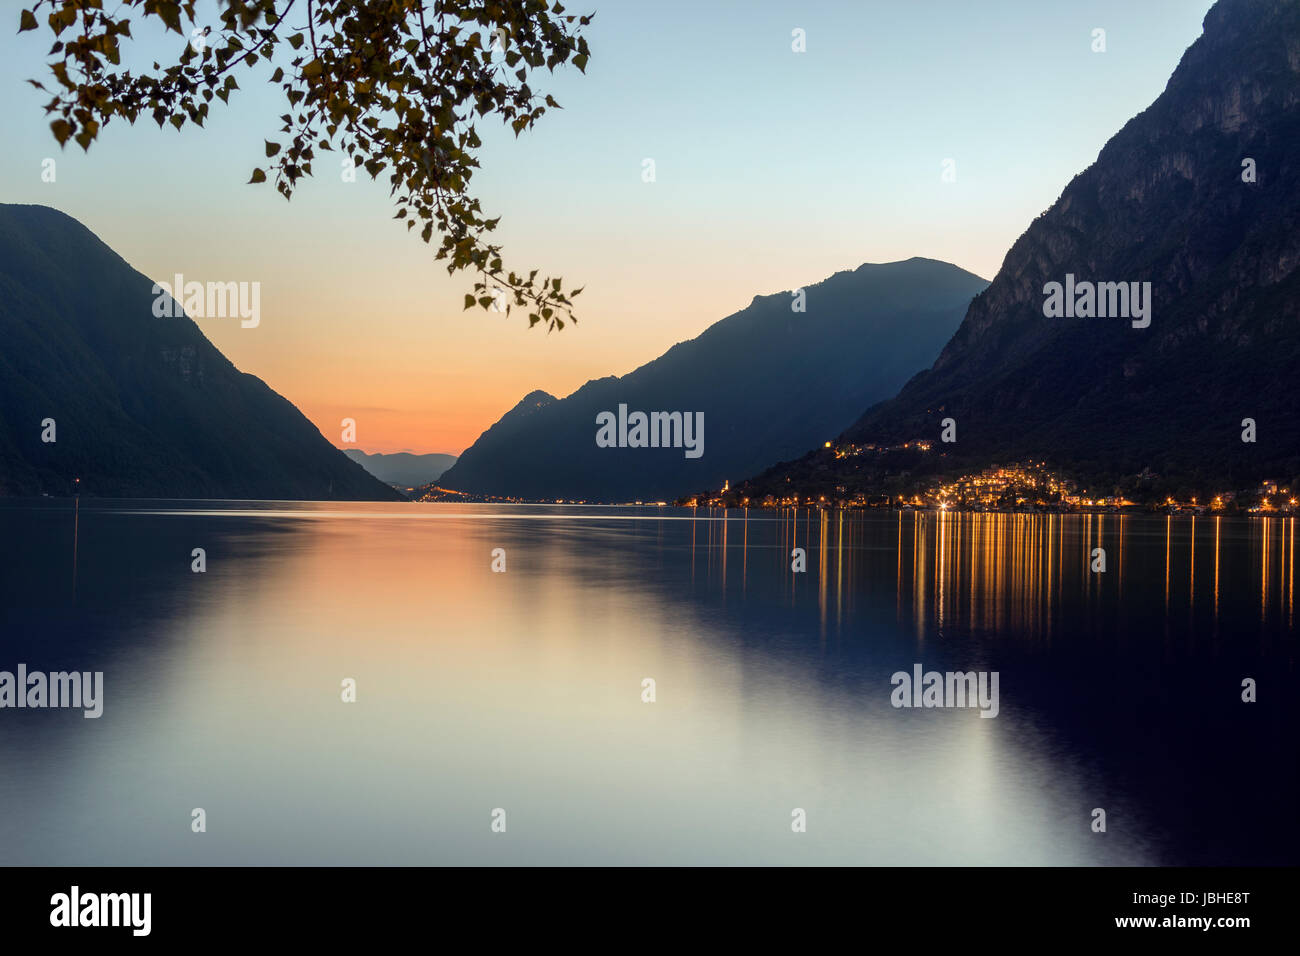 Italian Lakes - Lake Lugano at Porlezza in northern Italy at dusk. Stock Photo